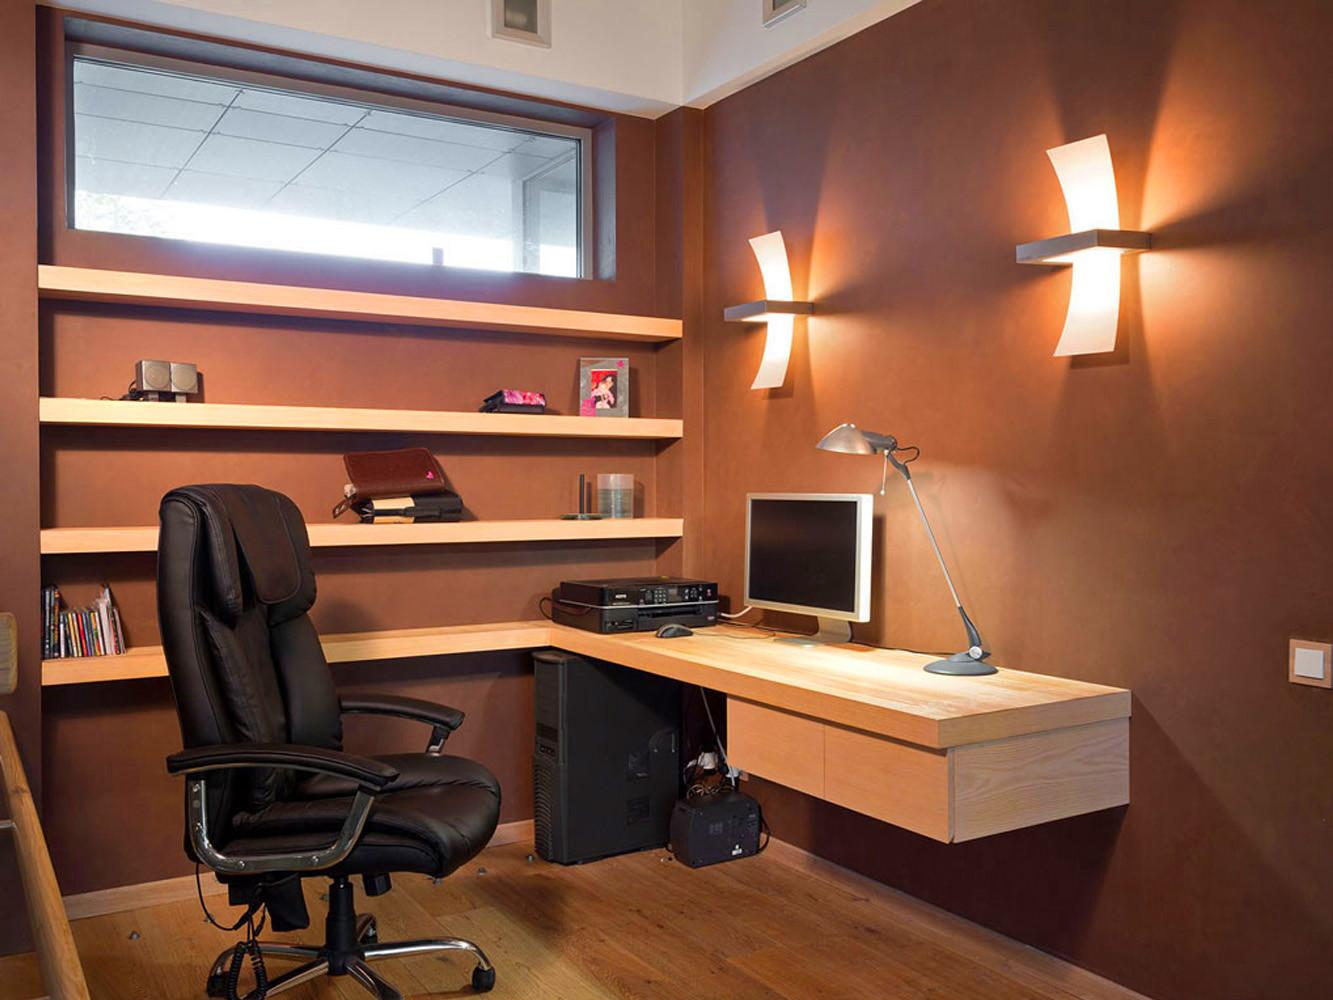 Office Lighting Fixtures Guide Home Interior Design